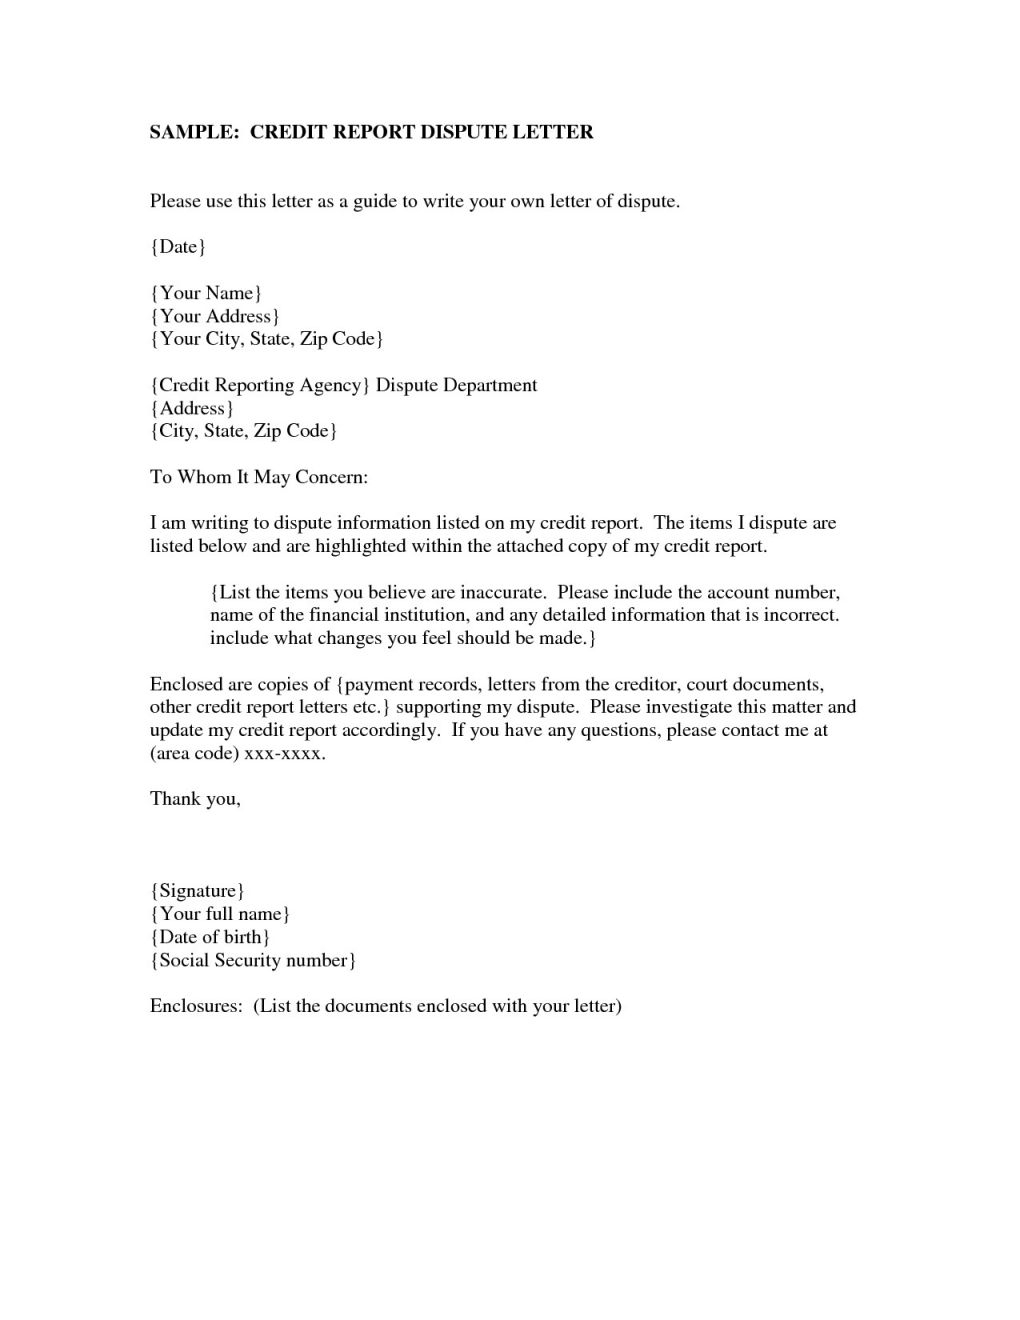 Dispute Letter to Credit Bureau Template - Well Known Sample Dispute Letter to Credit Bureau Kb33